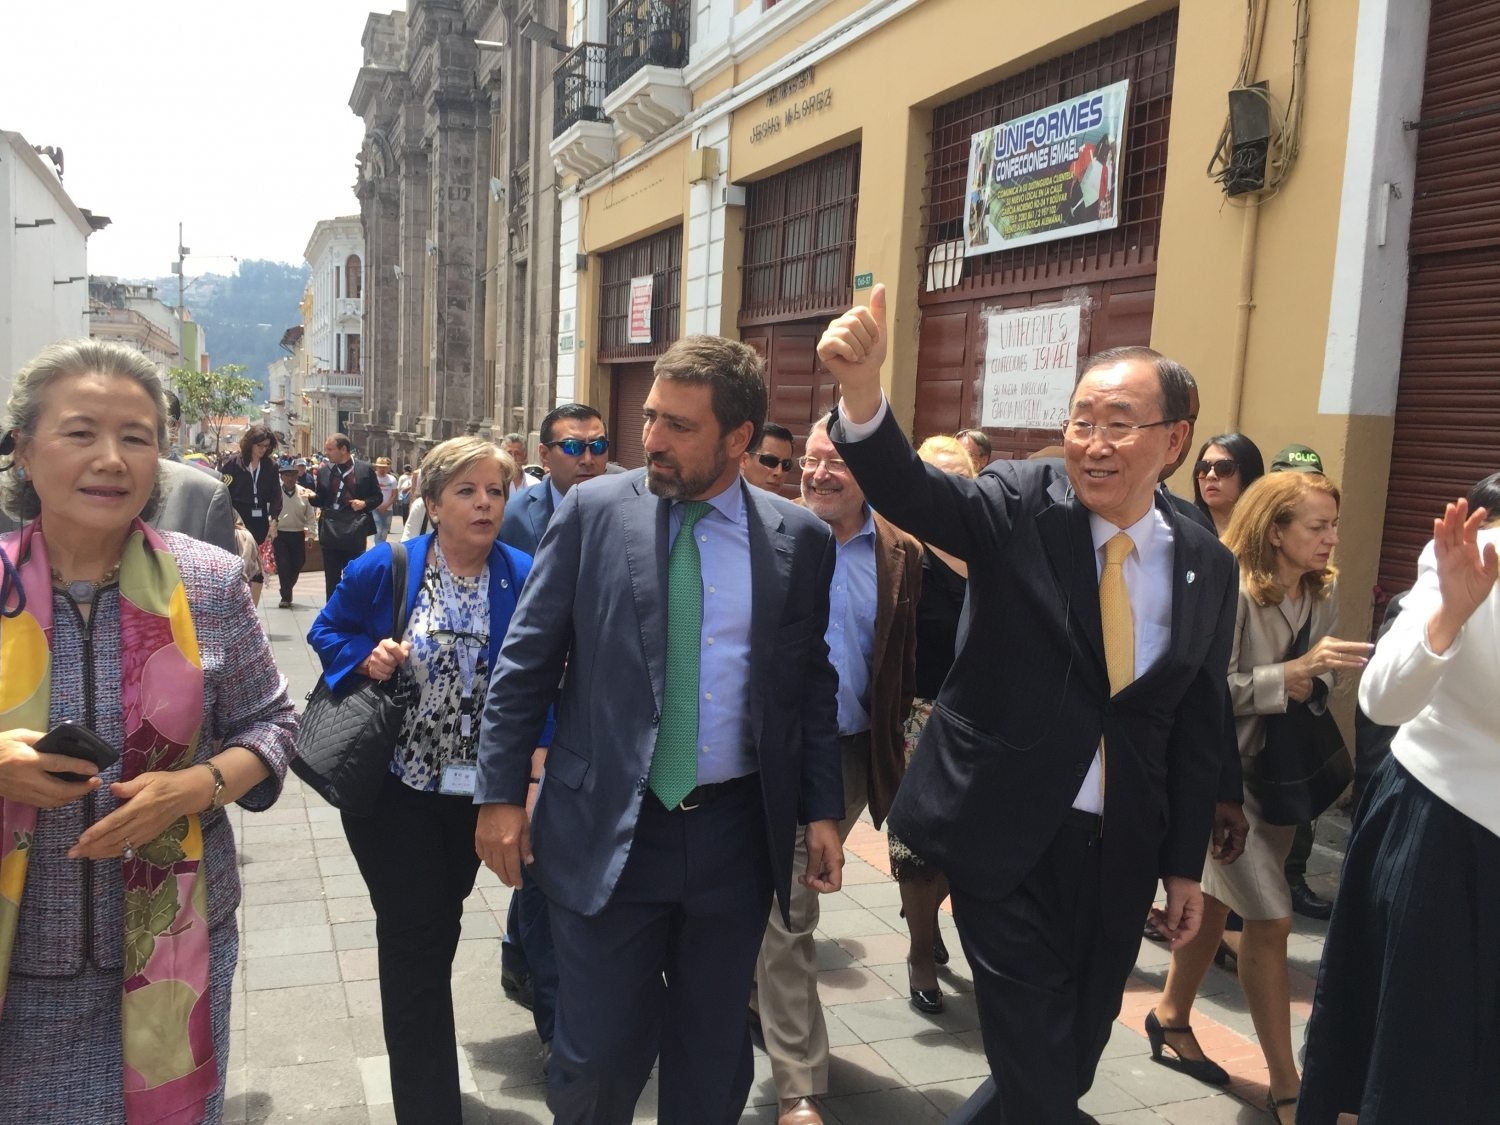 Photo: Secretary-General Ban Ki-moon waves to Ecuadorians as he walks through old Quito.